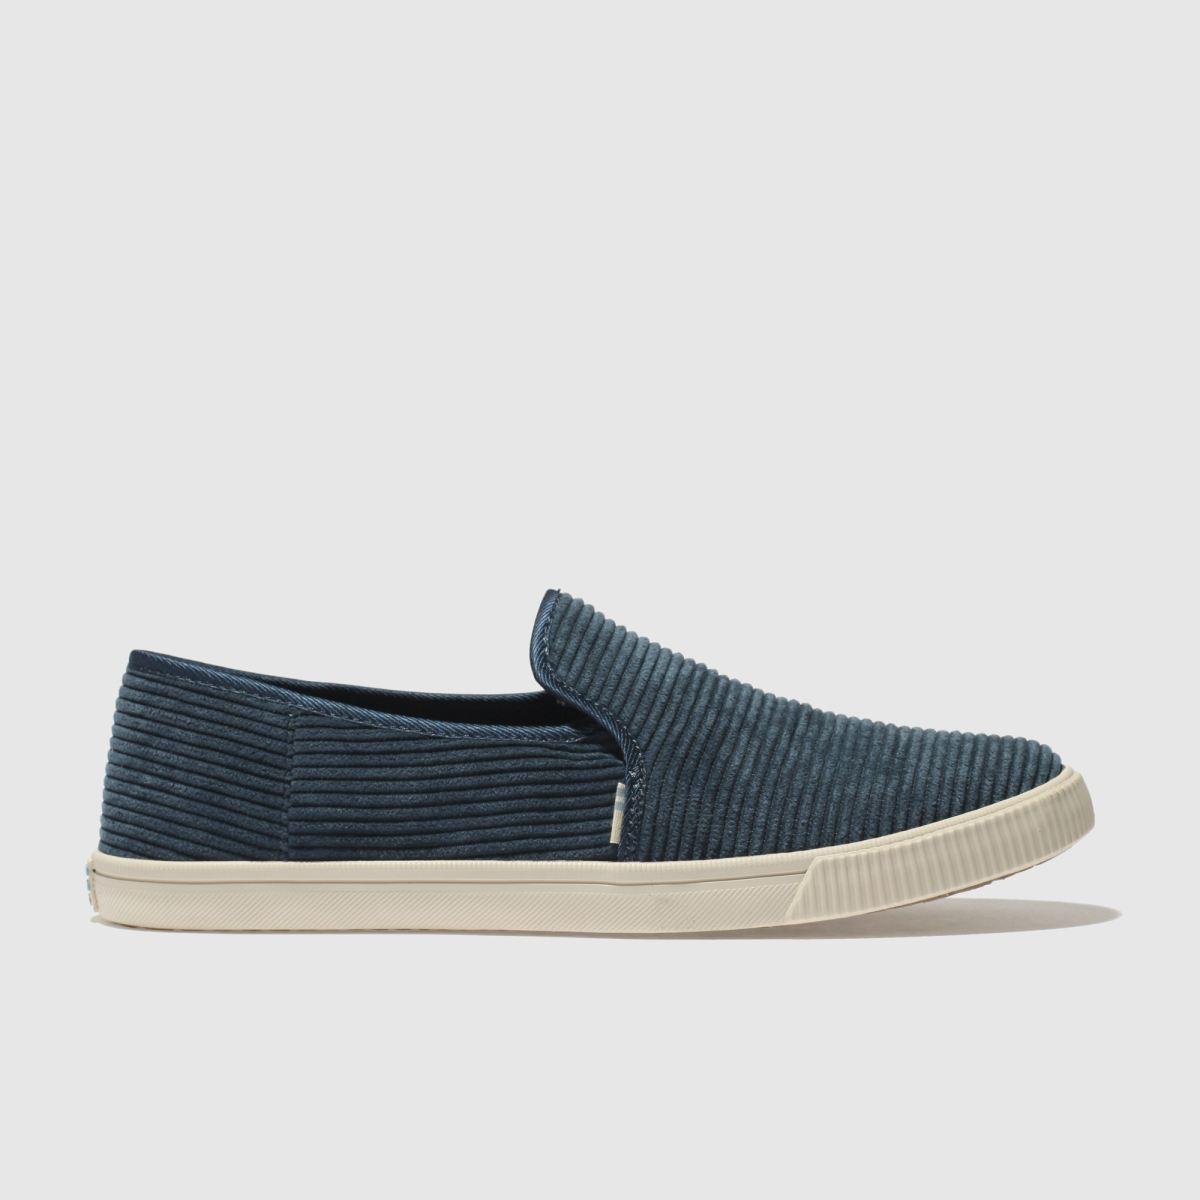 Toms Navy Clemente Flat Shoes